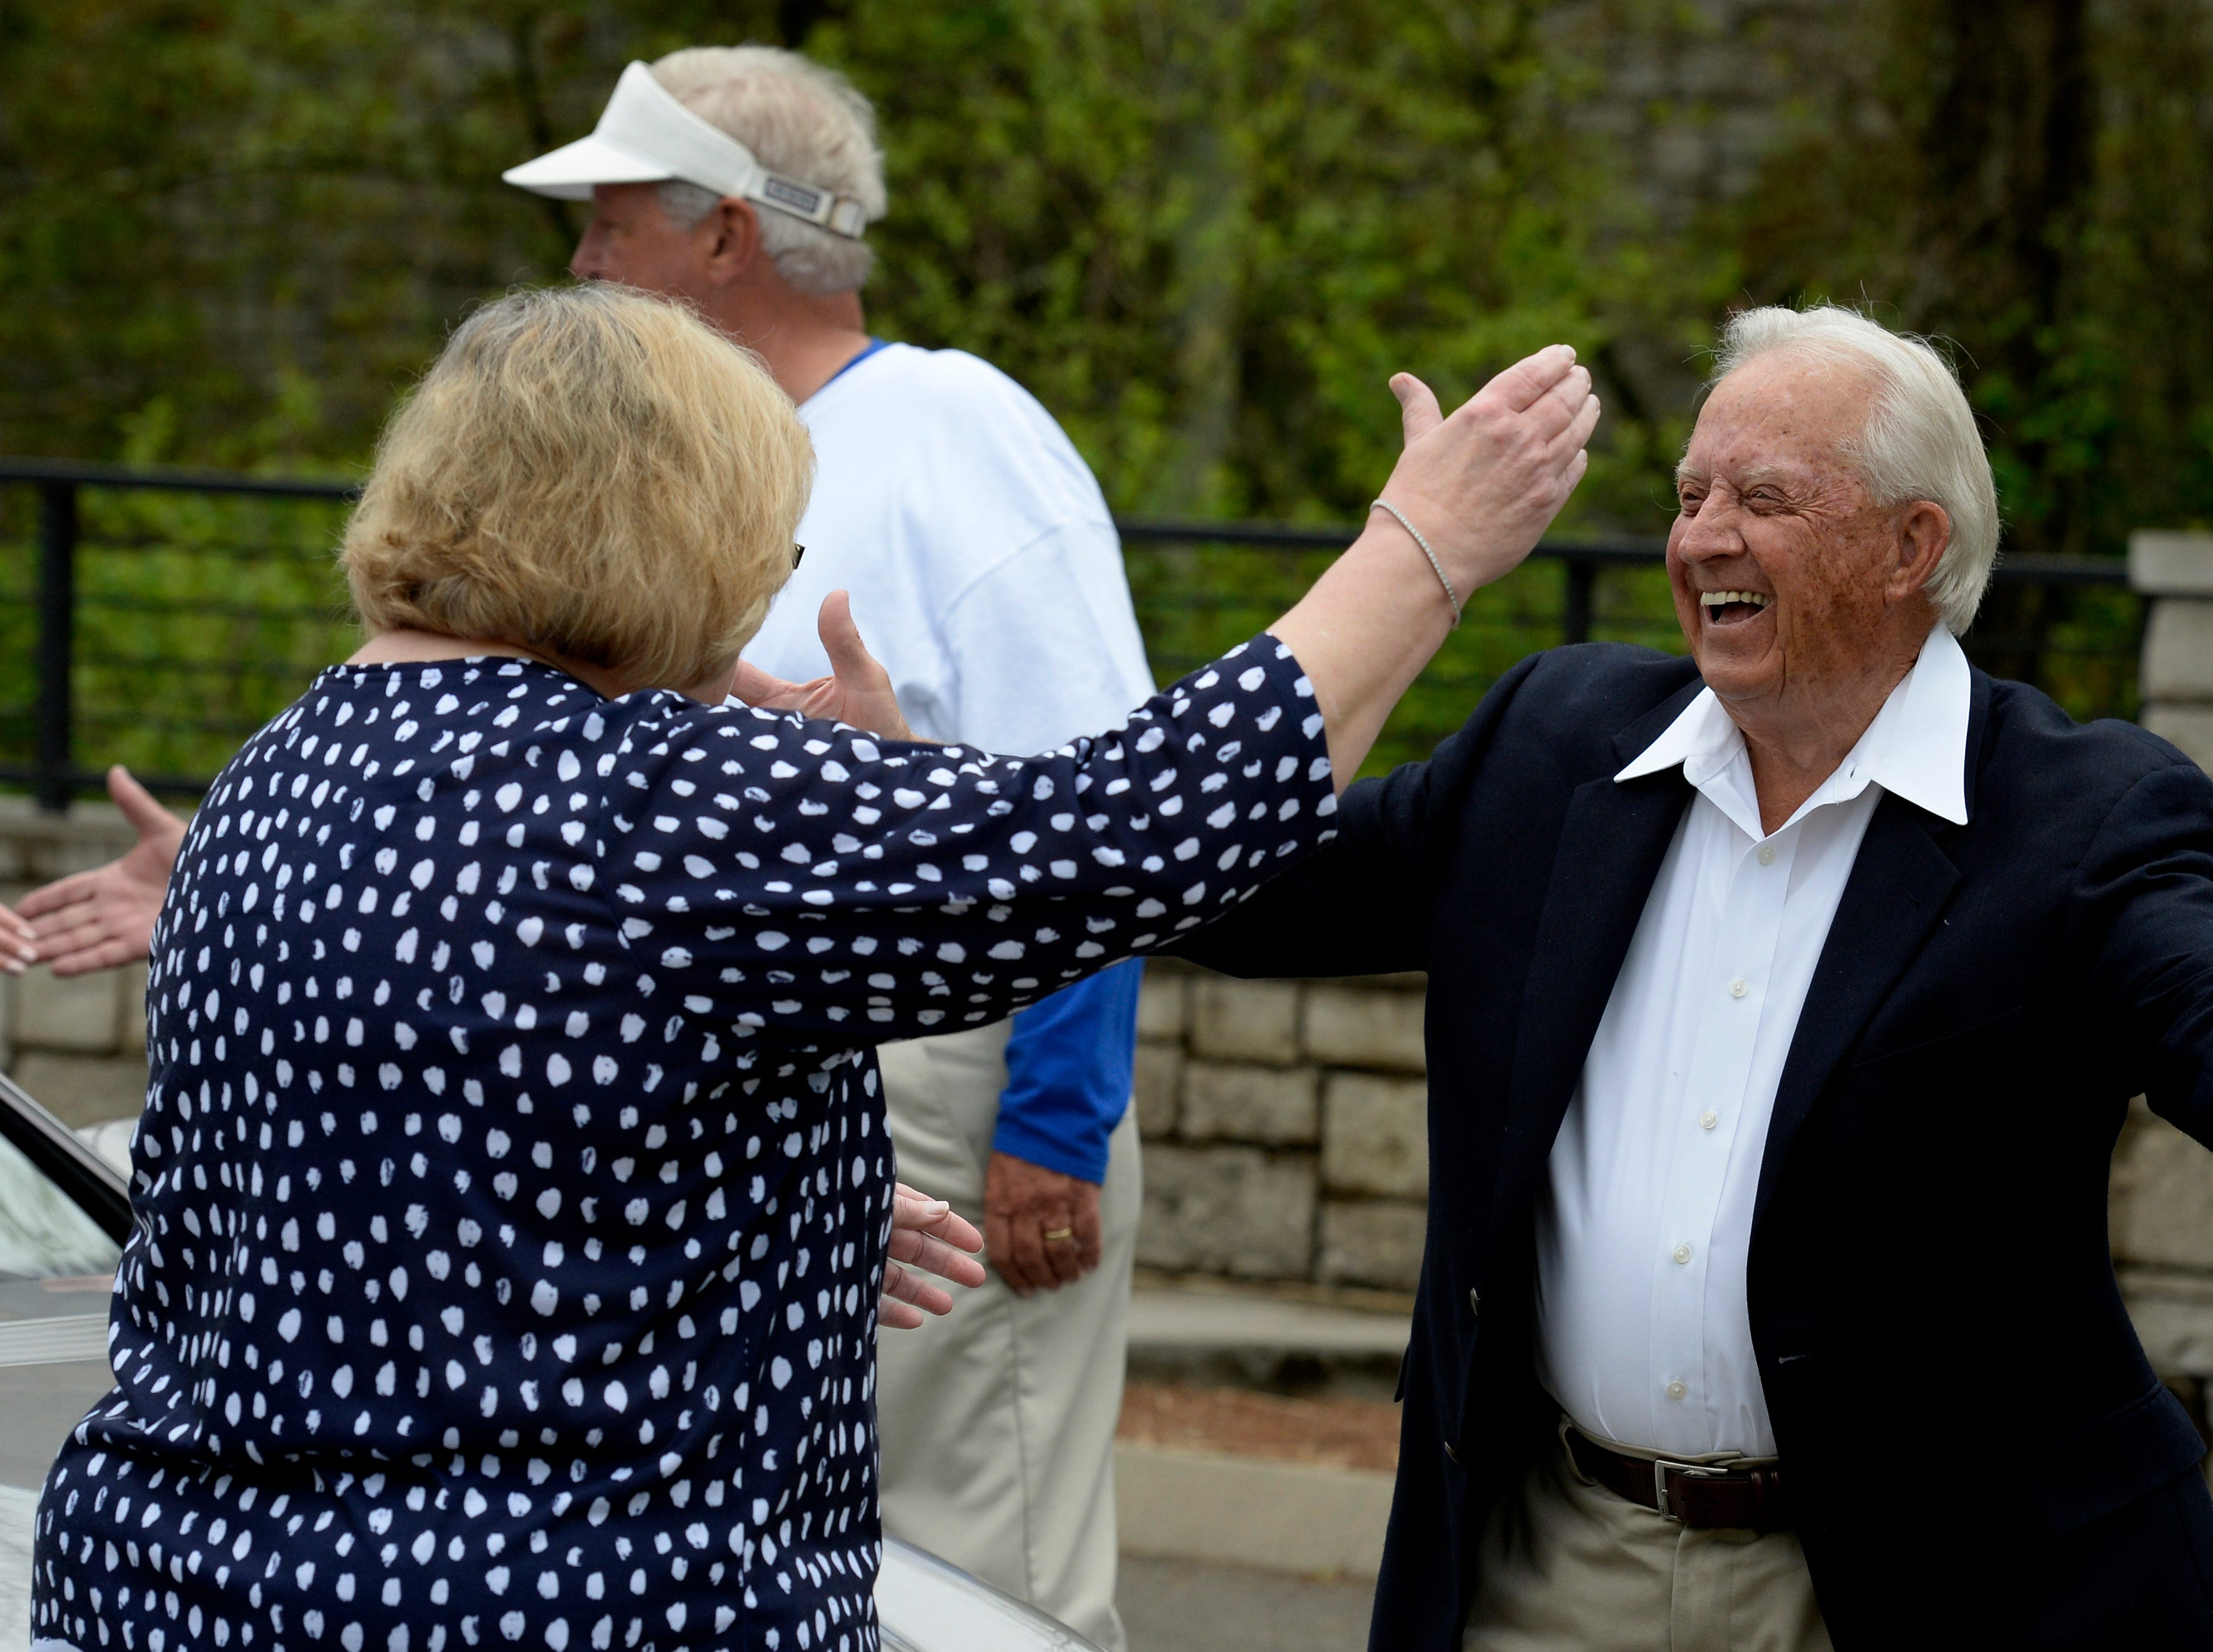 """Grand Marshal Jim Redd is greeted by Betsy Crosley before the start of Brentwood's """"A Golden Gallop"""" parade celebrating its 50th year as a community on Saturday, April 13, 2019, in Brentwood, Tenn."""